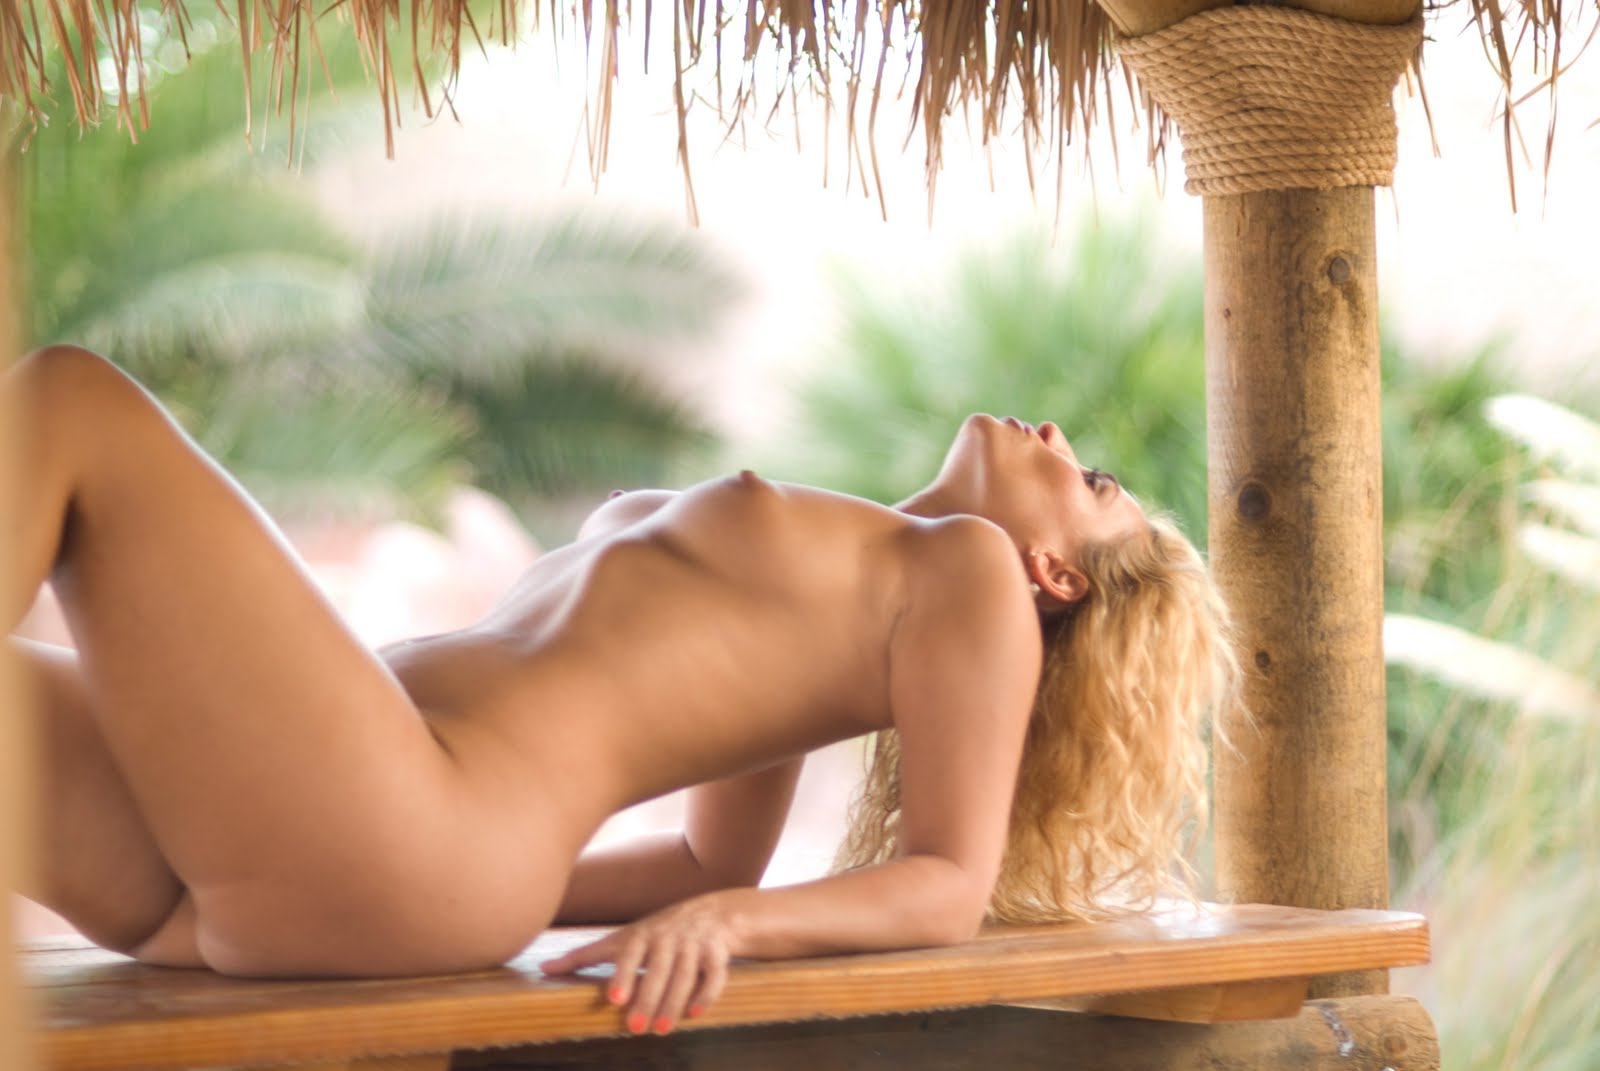 therapeutic massage sensual loving touch conscious sensuality education